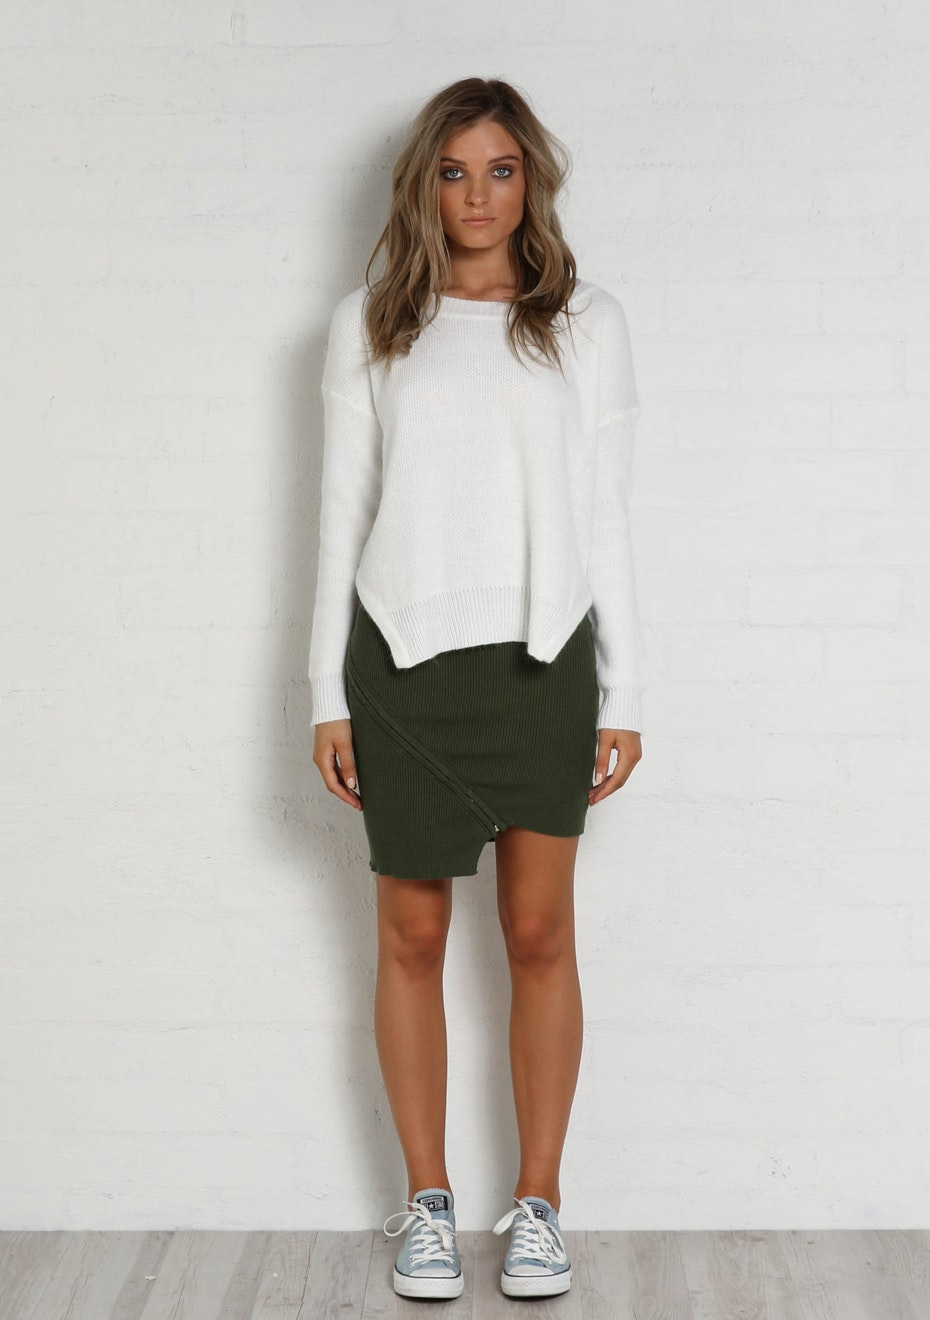 Madison - FRANKIE SCOOP KNIT - WHITE